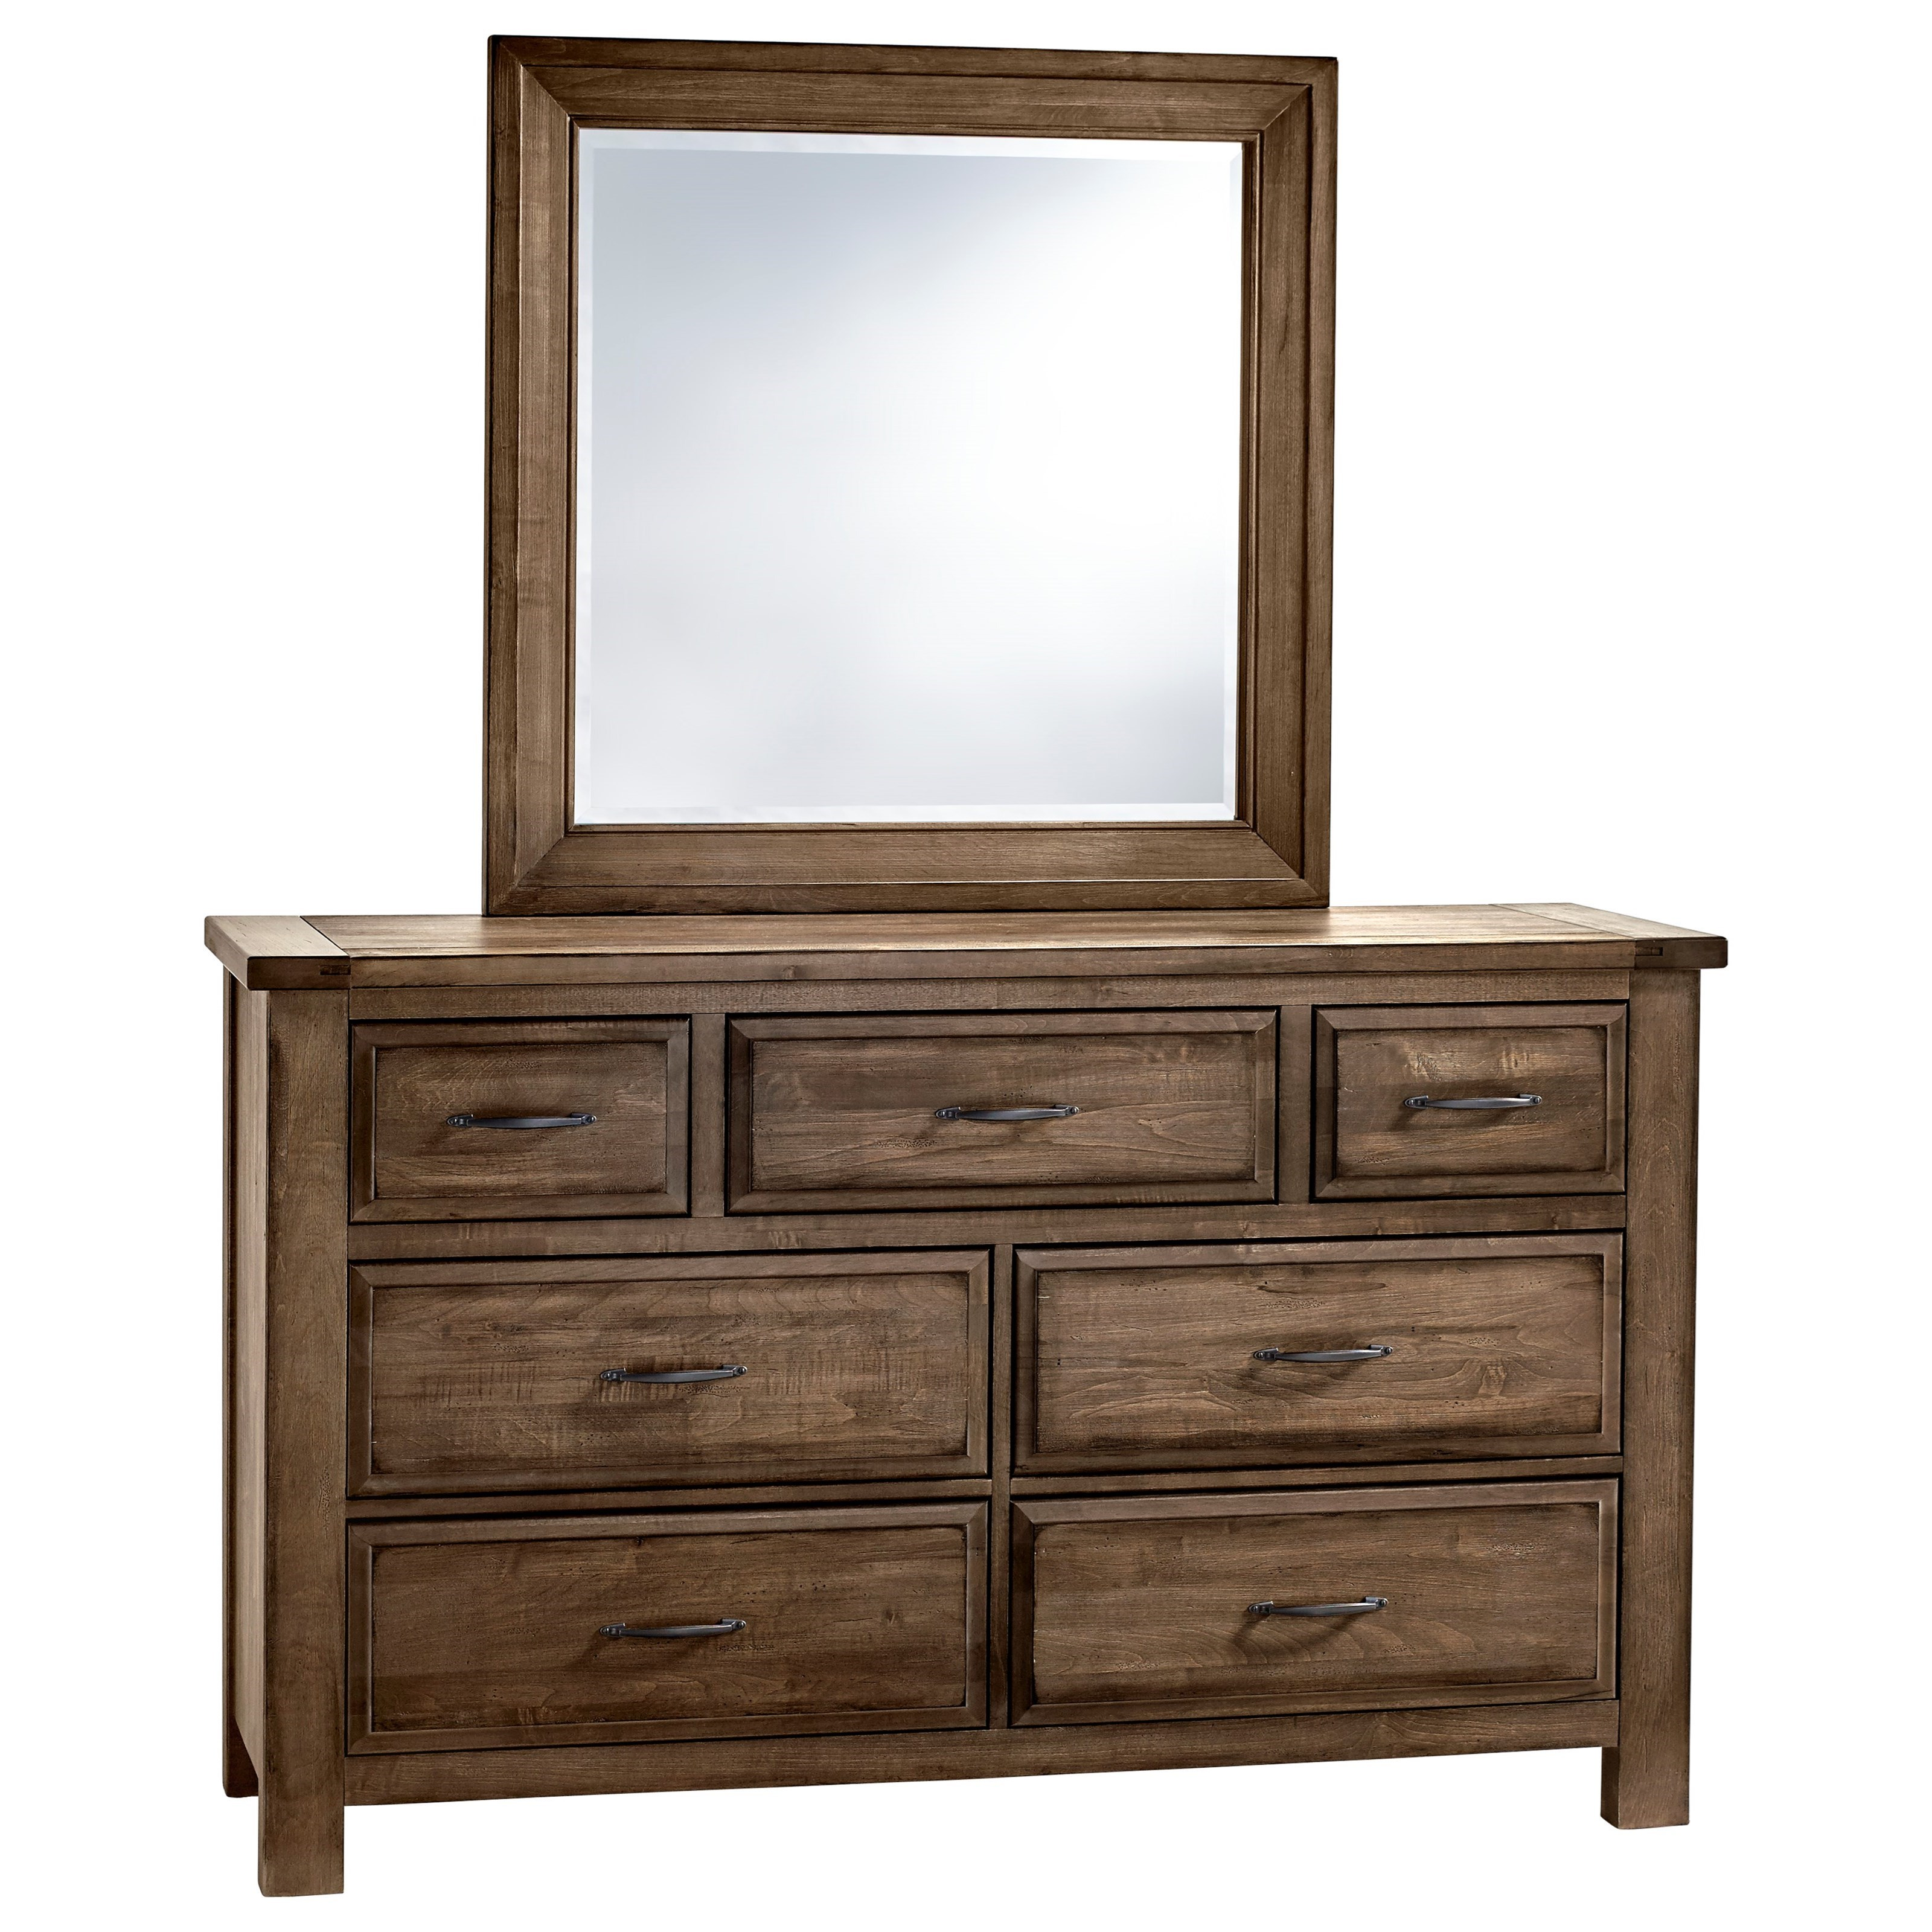 Maple Road Dresser & Mirror by Artisan & Post at Northeast Factory Direct